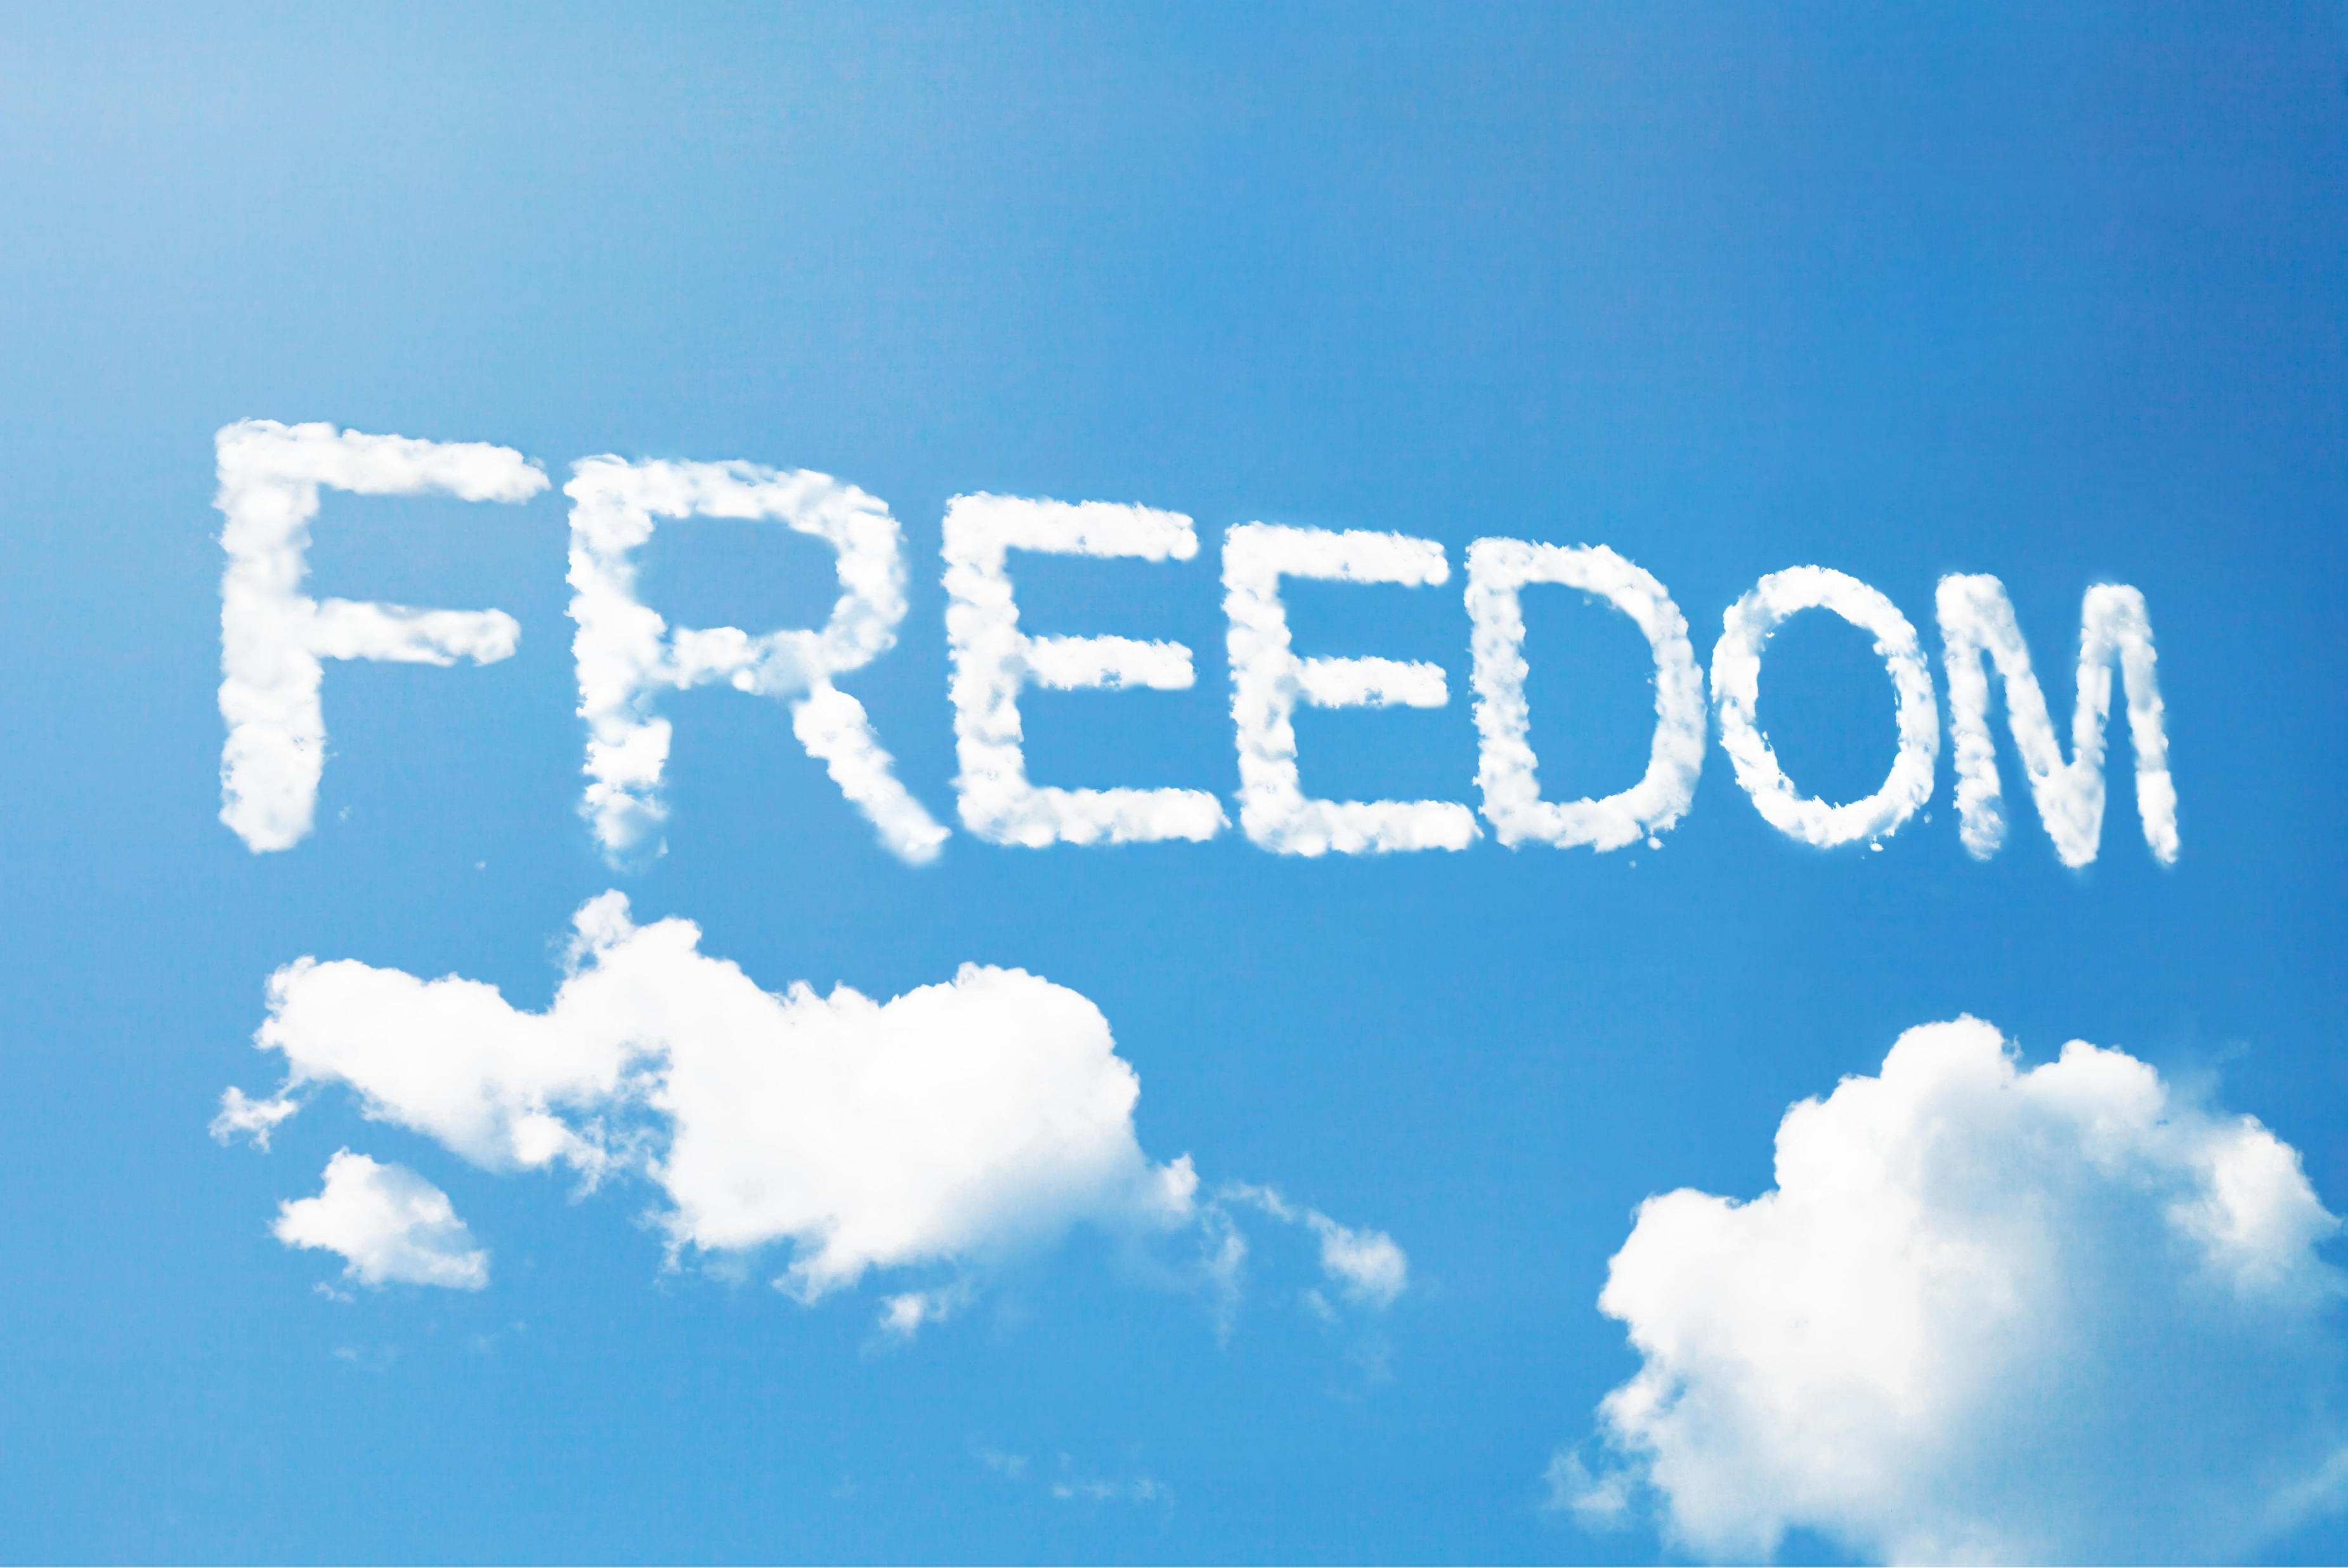 Freedom written in the sky